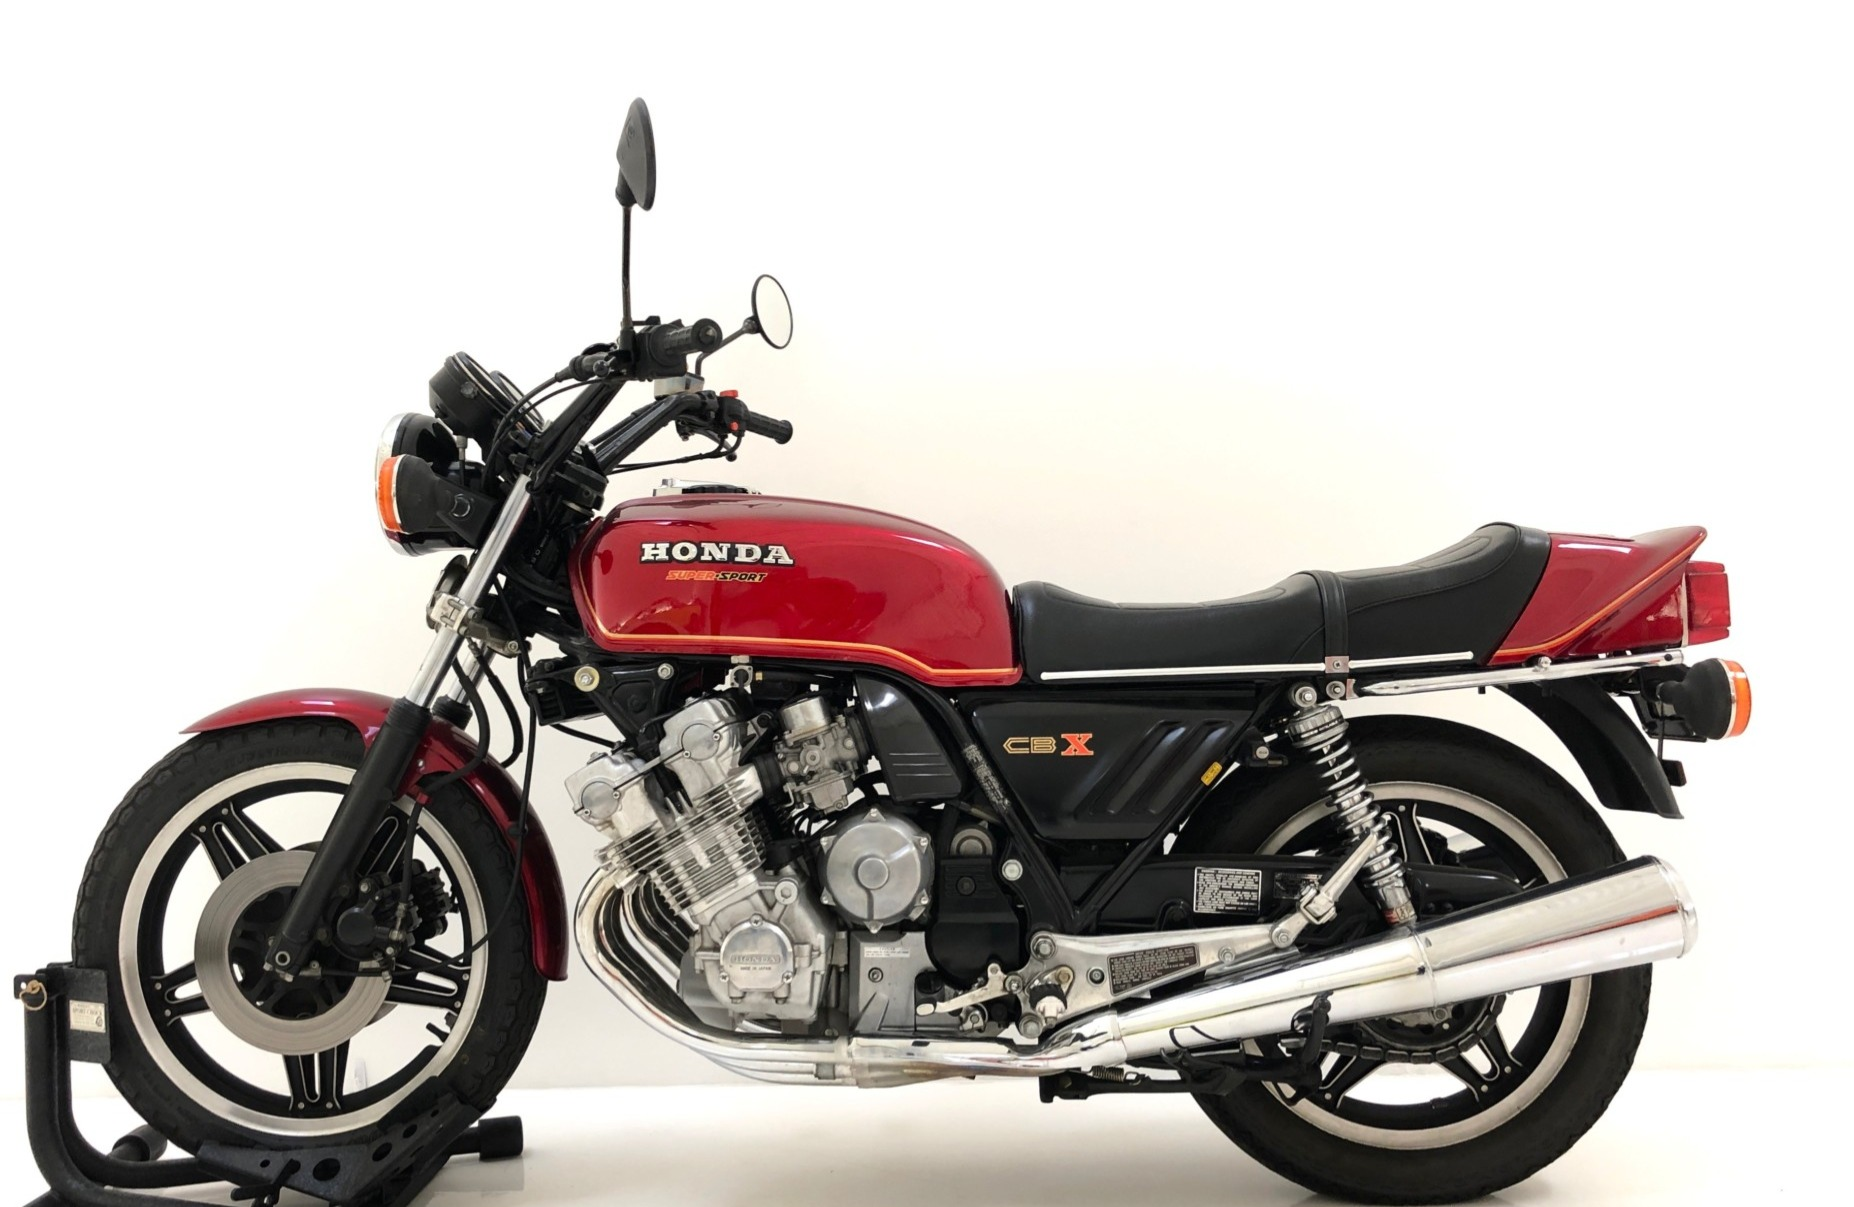 hight resolution of 1980 honda cbx 1000 for sale on bat auctions sold for 16 373 on february 19 2019 lot 16 429 bring a trailer